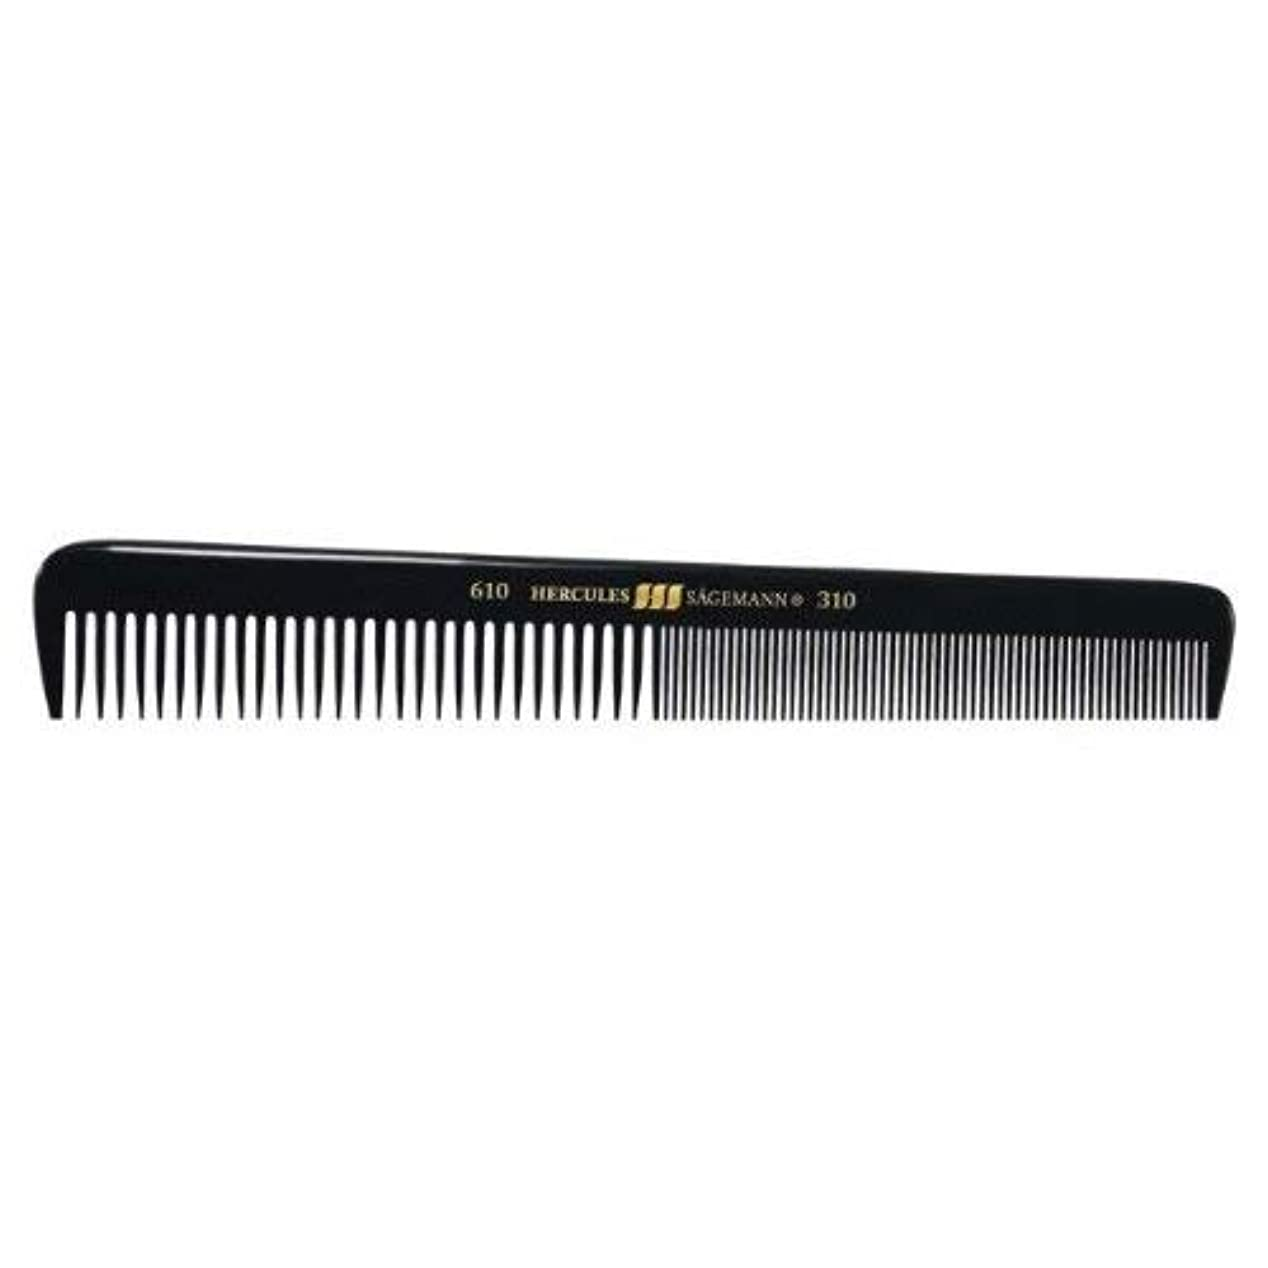 Hercules S?gemann Gents Comb for short hair | Ebonite - Made in Germany [並行輸入品]